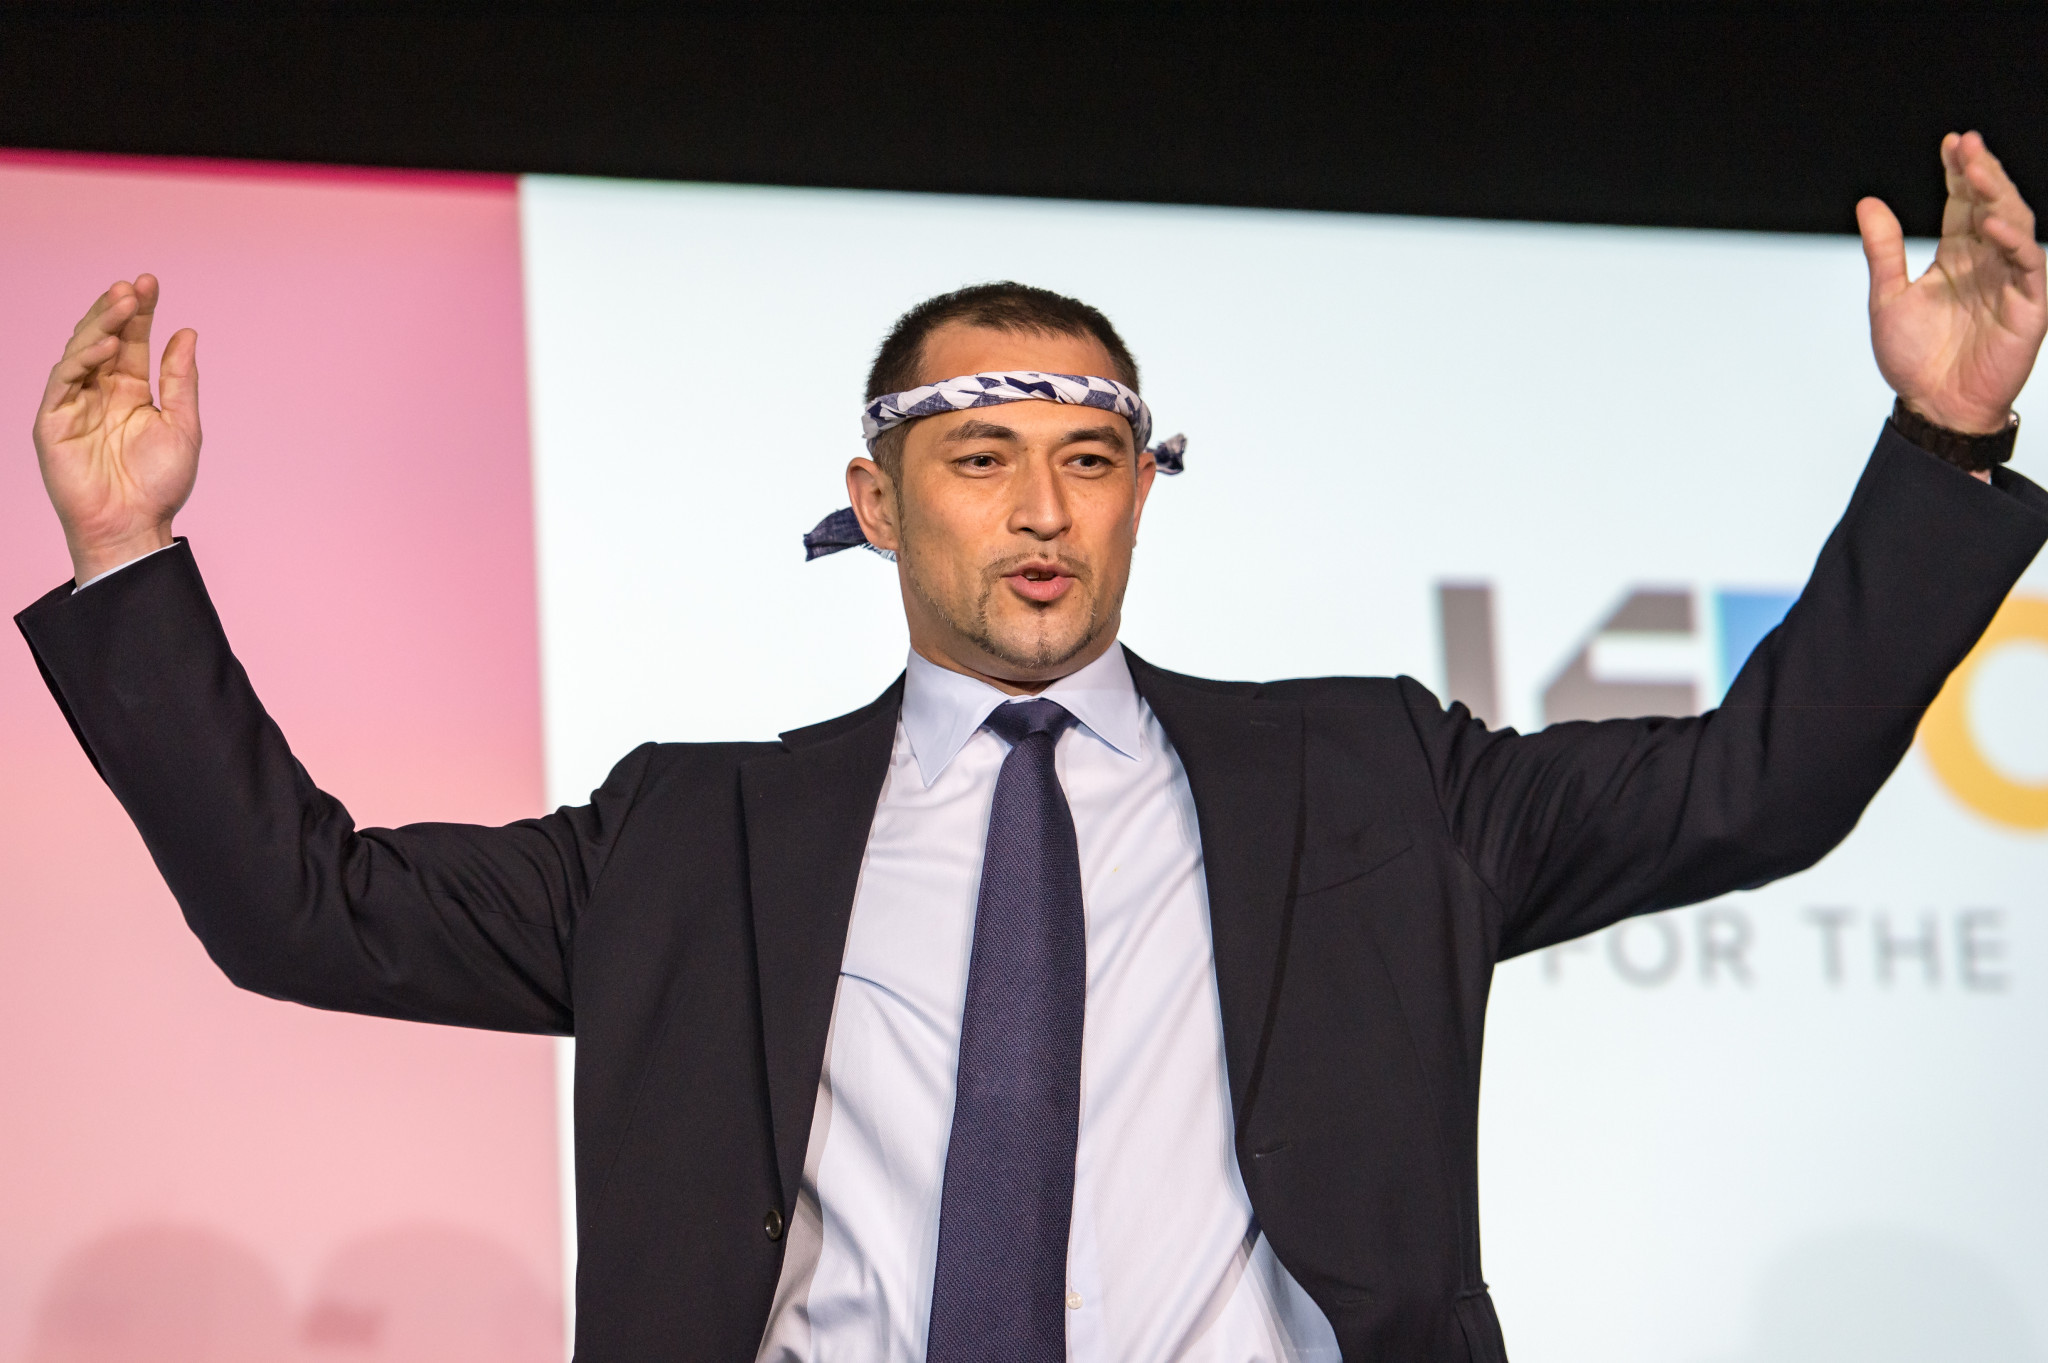 Tokyo 2020 sports director Koji Murofushi was in expansive form during his presentation on artificial intelligence and technology ©SportAccord